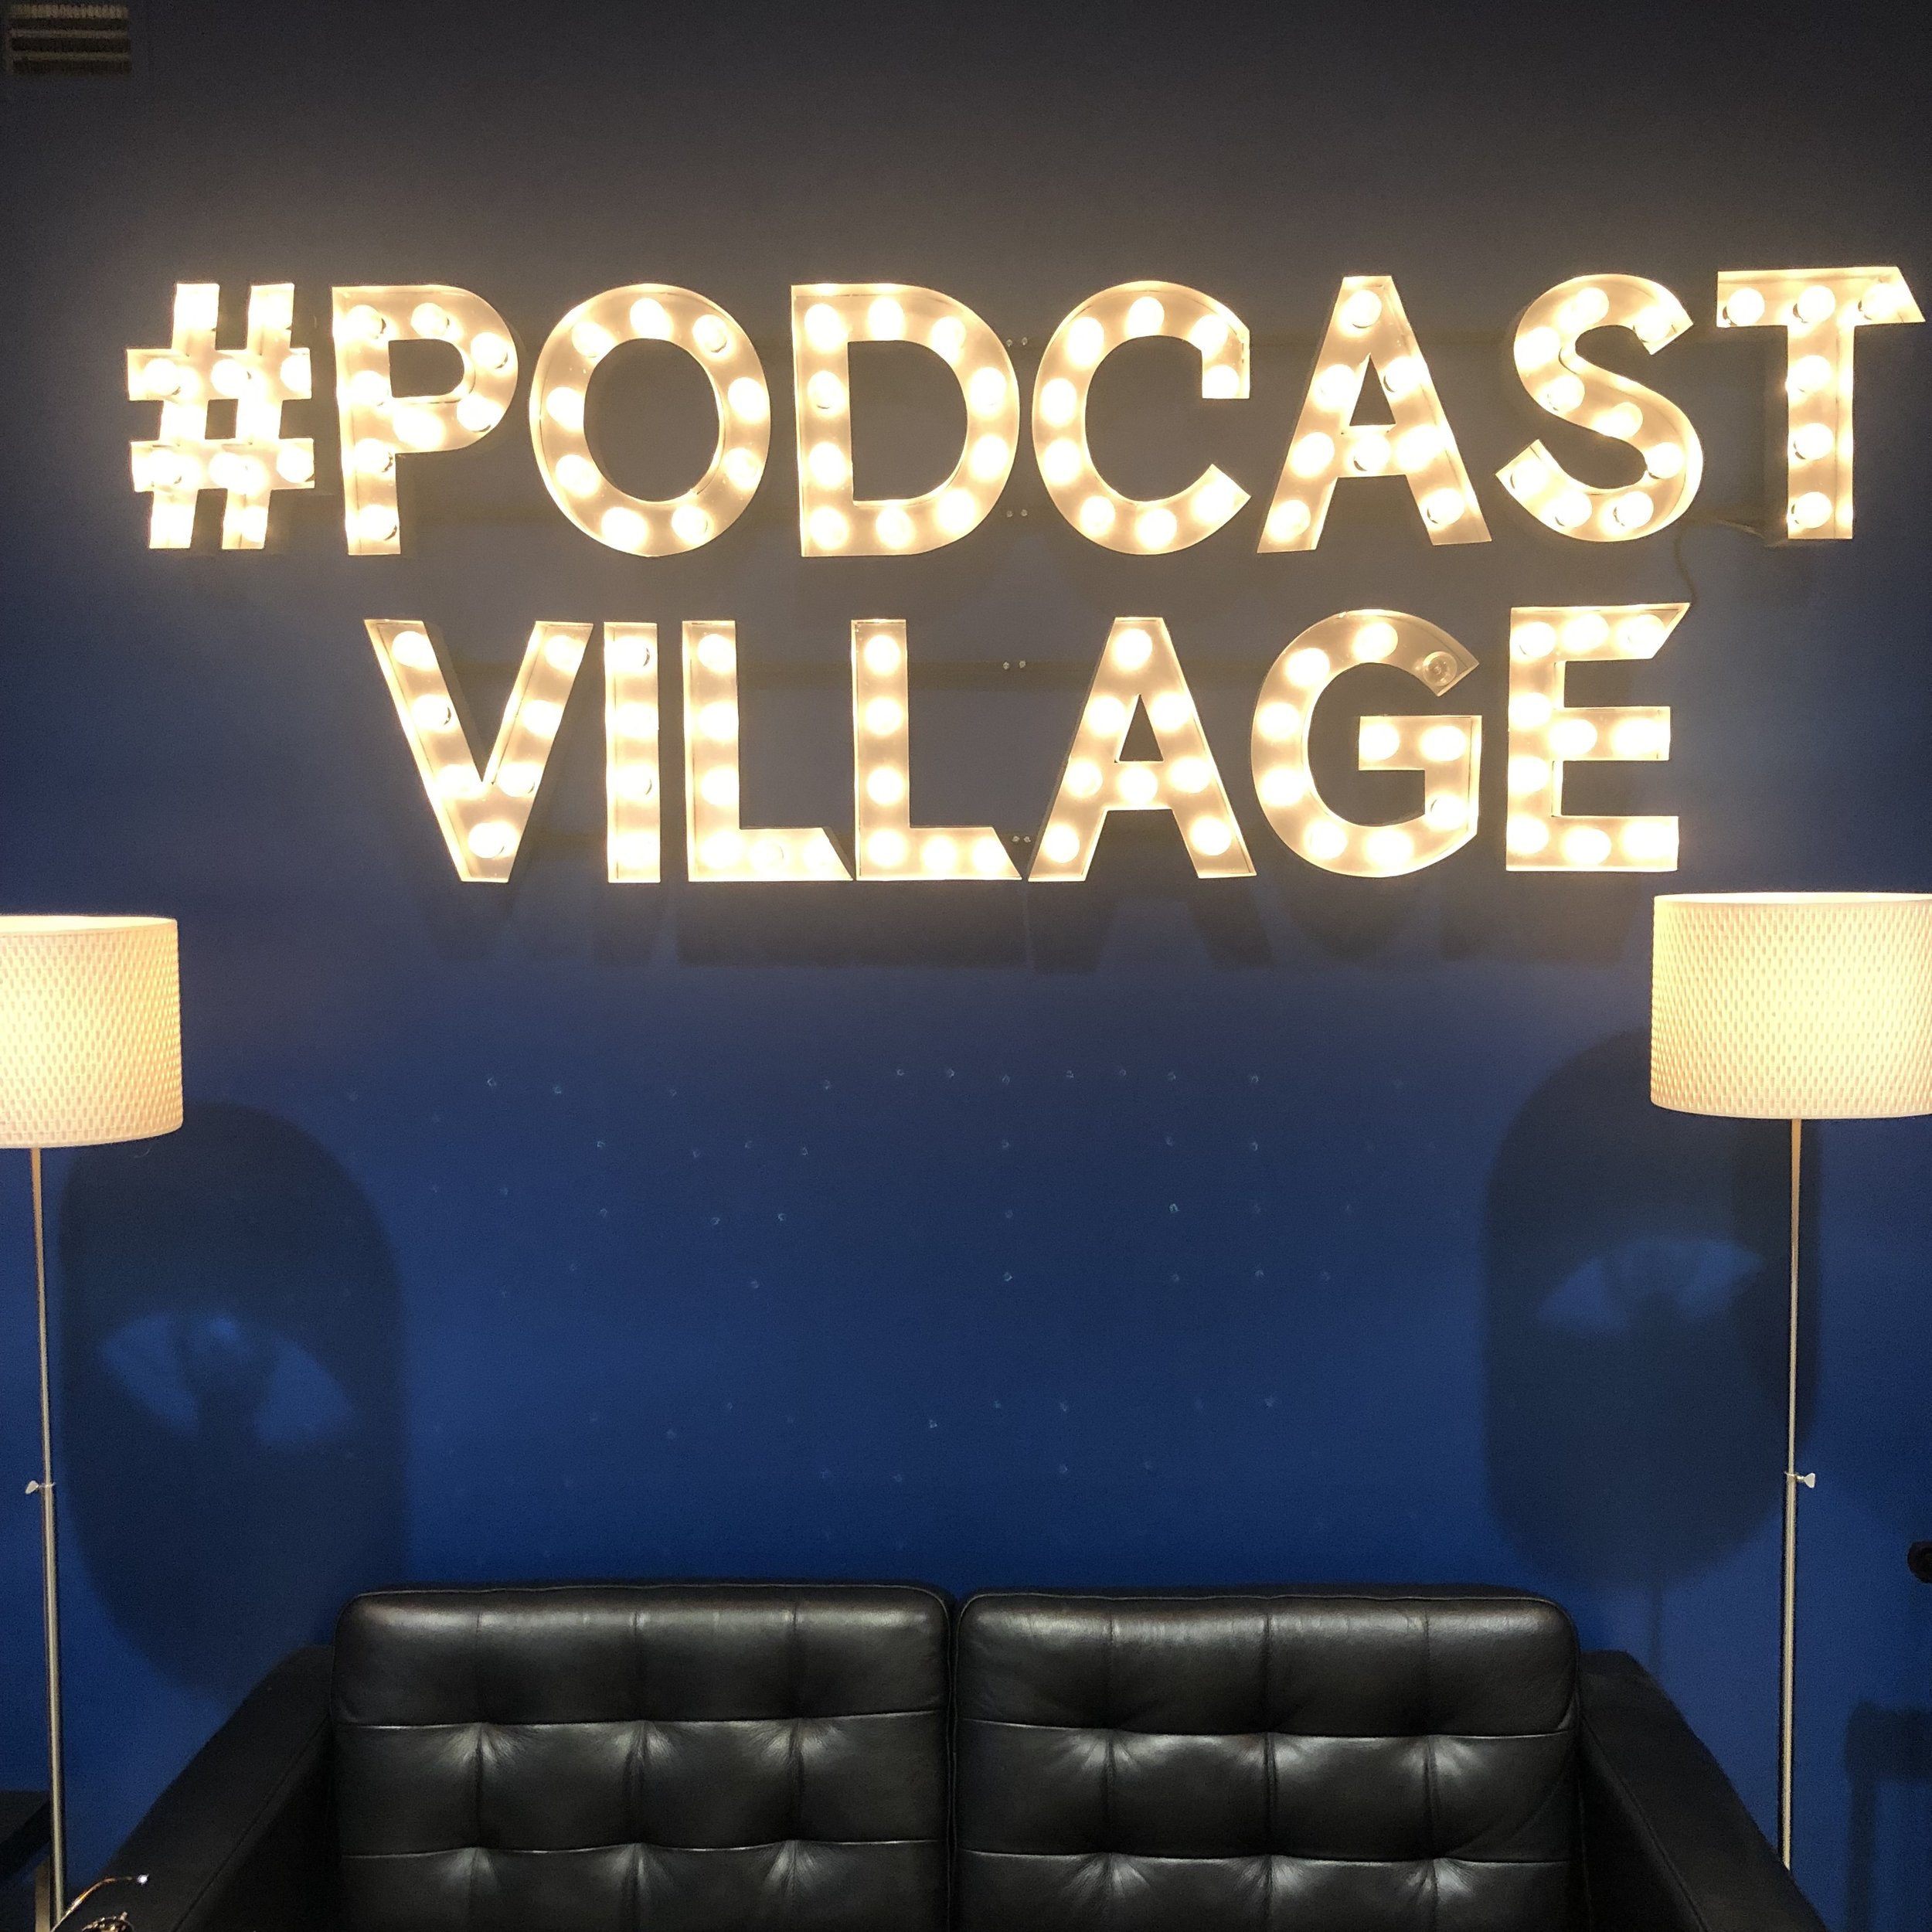 Podcast Village at 2300 Wisconsin Street in DC is a cozy, creative studio with a top-notch team to produce Podcasts & Shows.